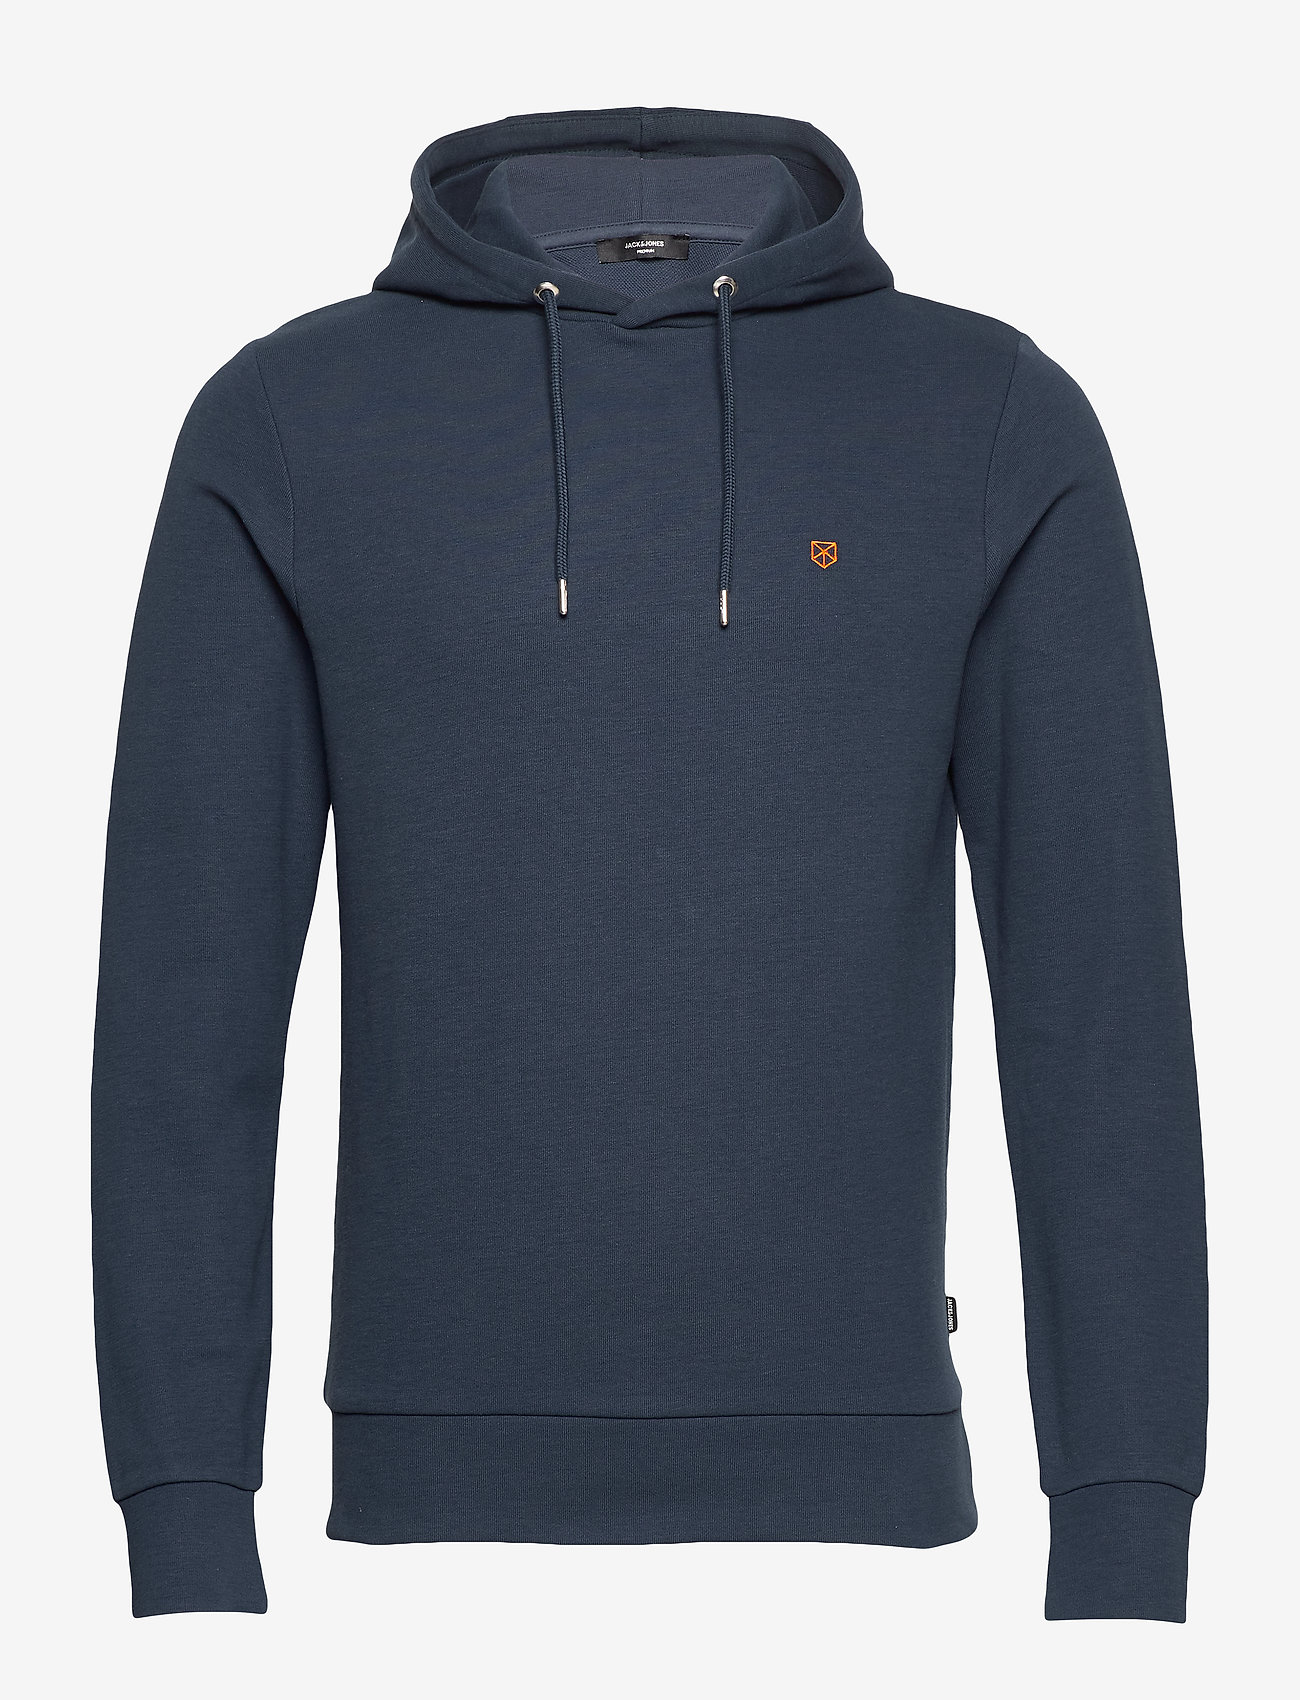 Jack & Jones - JPRBLAHARDY SWEAT HOOD PRE STS - basic sweatshirts - black iris - 0